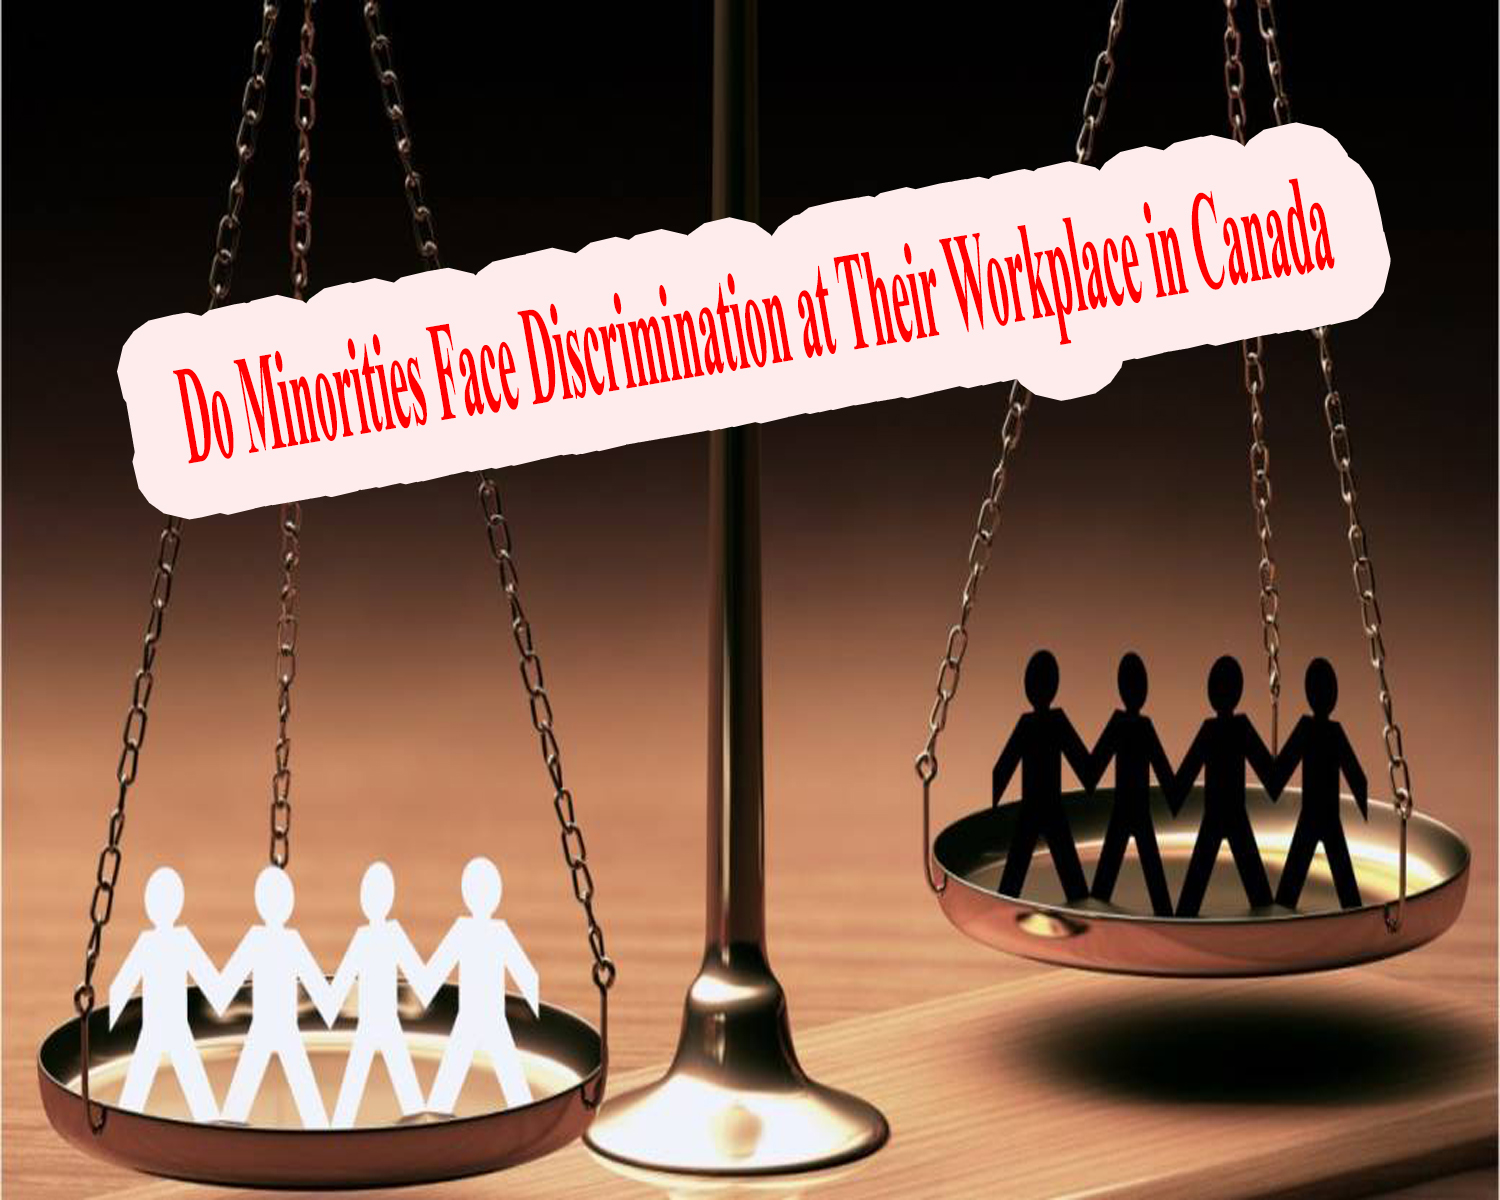 Do Minorities Face Discrimination at Their Workplace in Canada